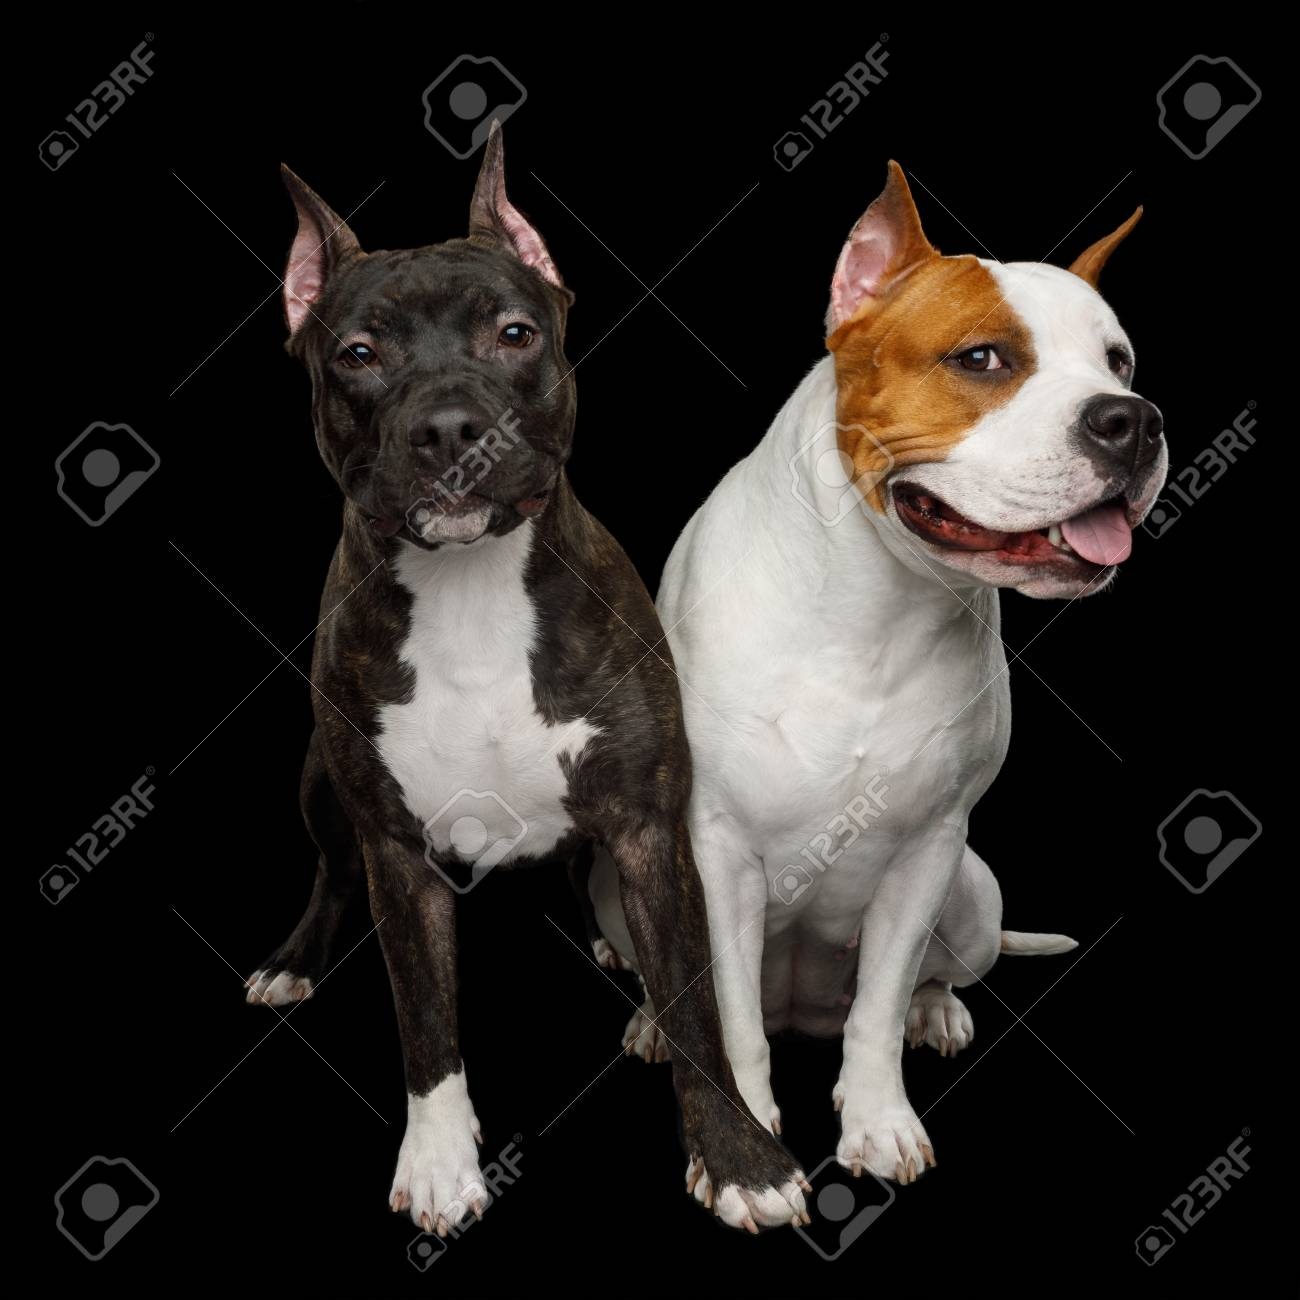 Two American Staffordshire Terrier Dogs Sitting together and